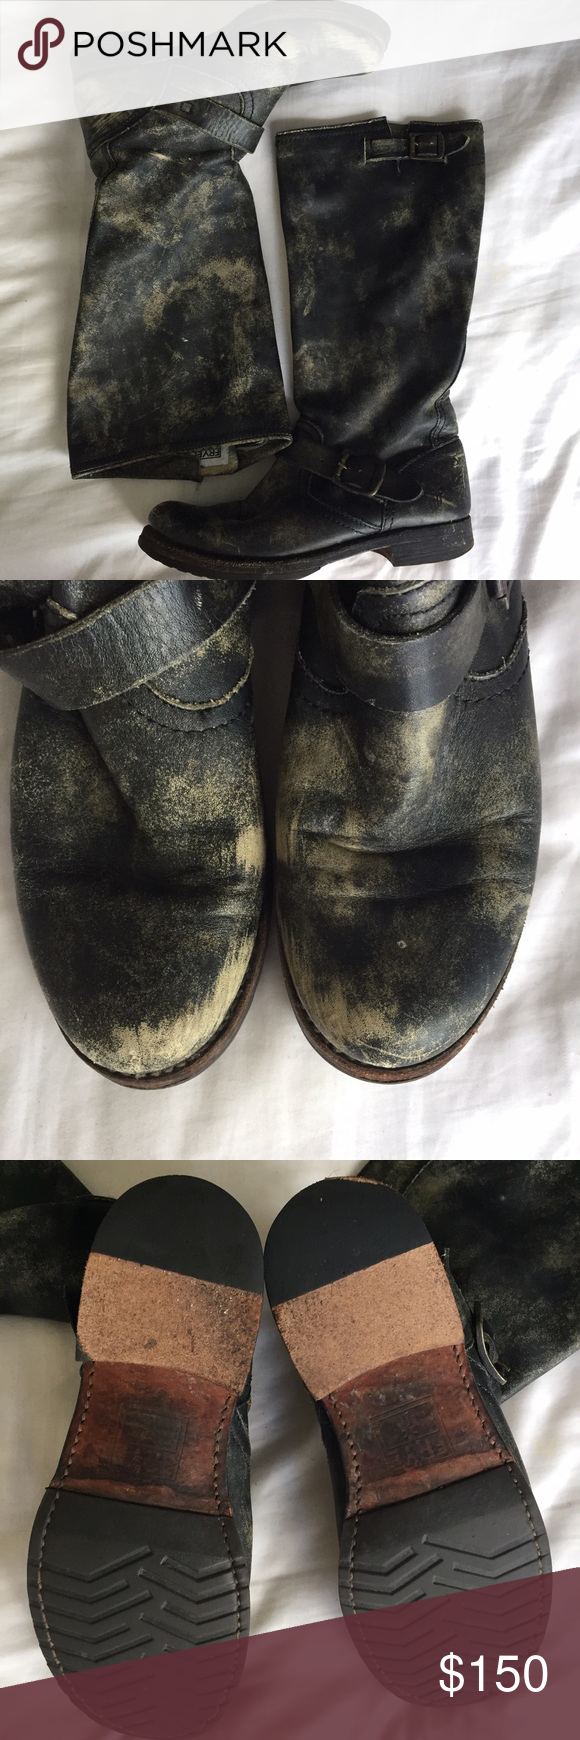 FRYE VERONICA SLOUCH Distressed Leather